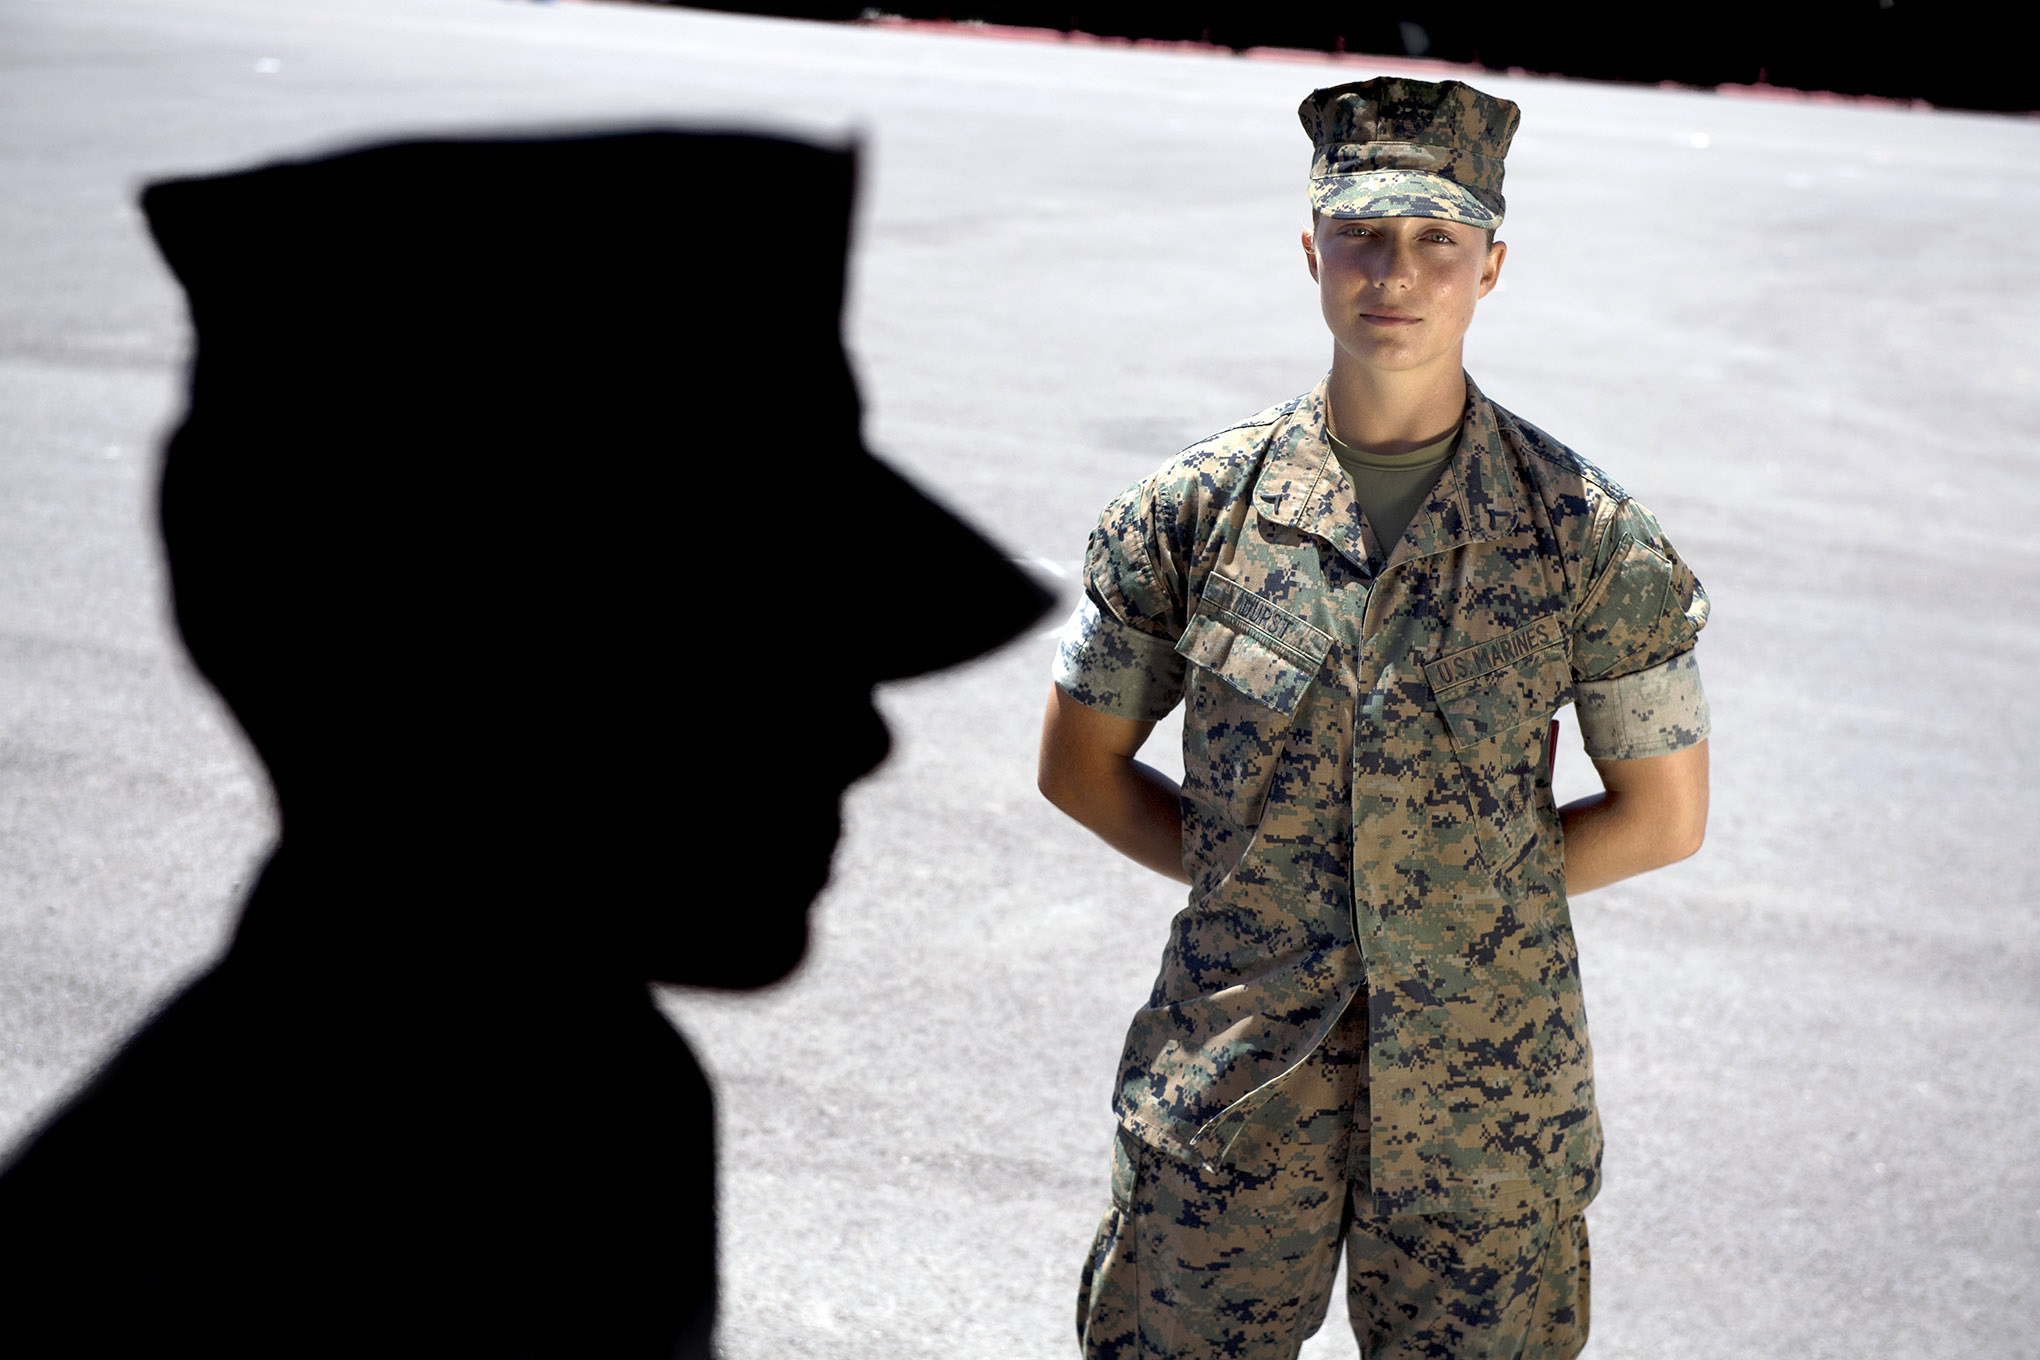 Sara Durst, 26, is recognized as the honor graduate, beating out 266 male and female students in the Marine Combat Training Battalion at Camp Pendleton on Tuesday, July 24, 2018.